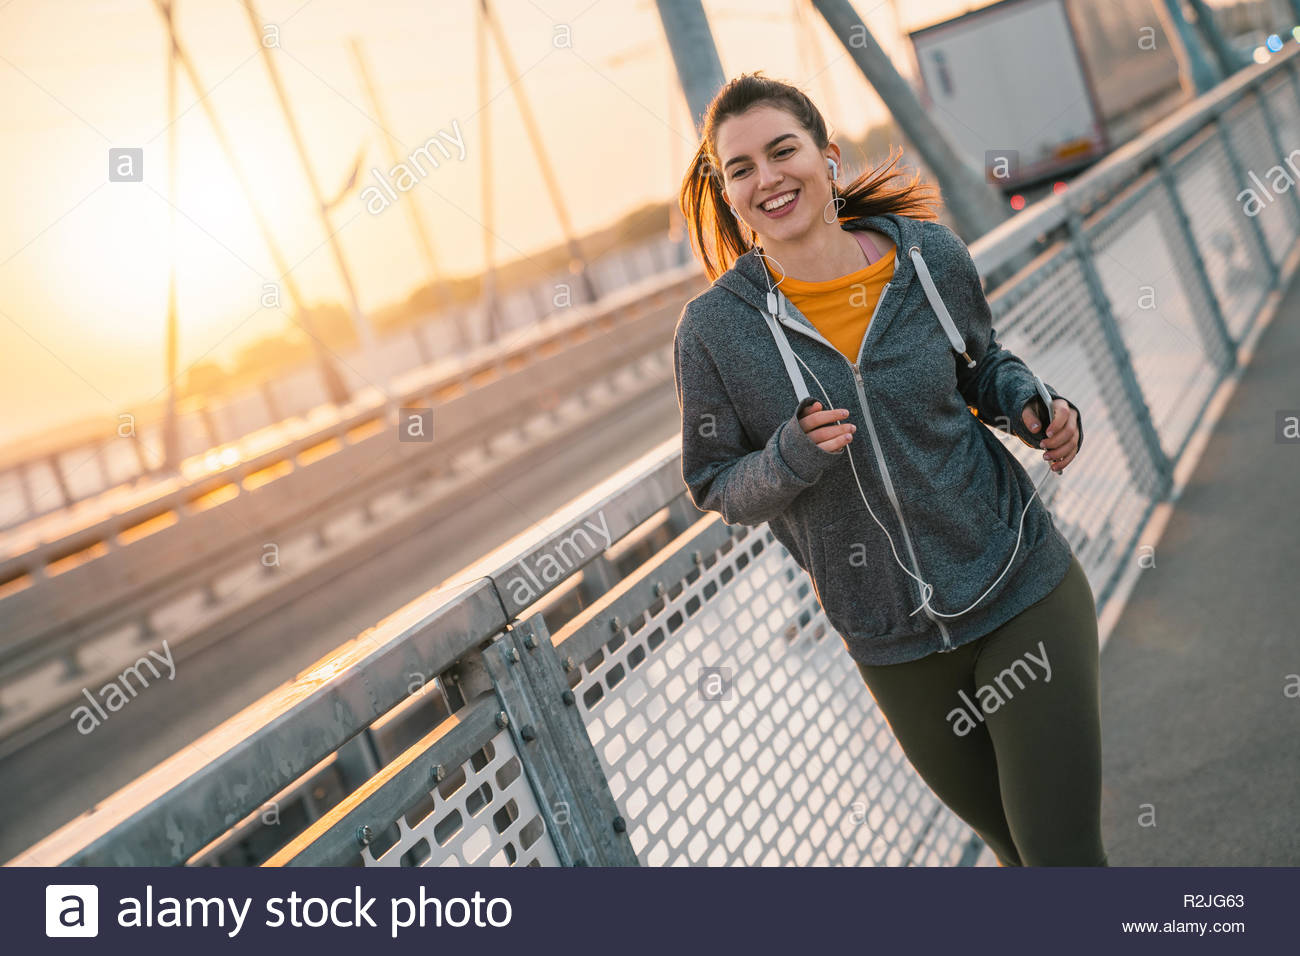 Young sportswoman running while smiling and listening to music on a bridge at sunrise. - Stock Image